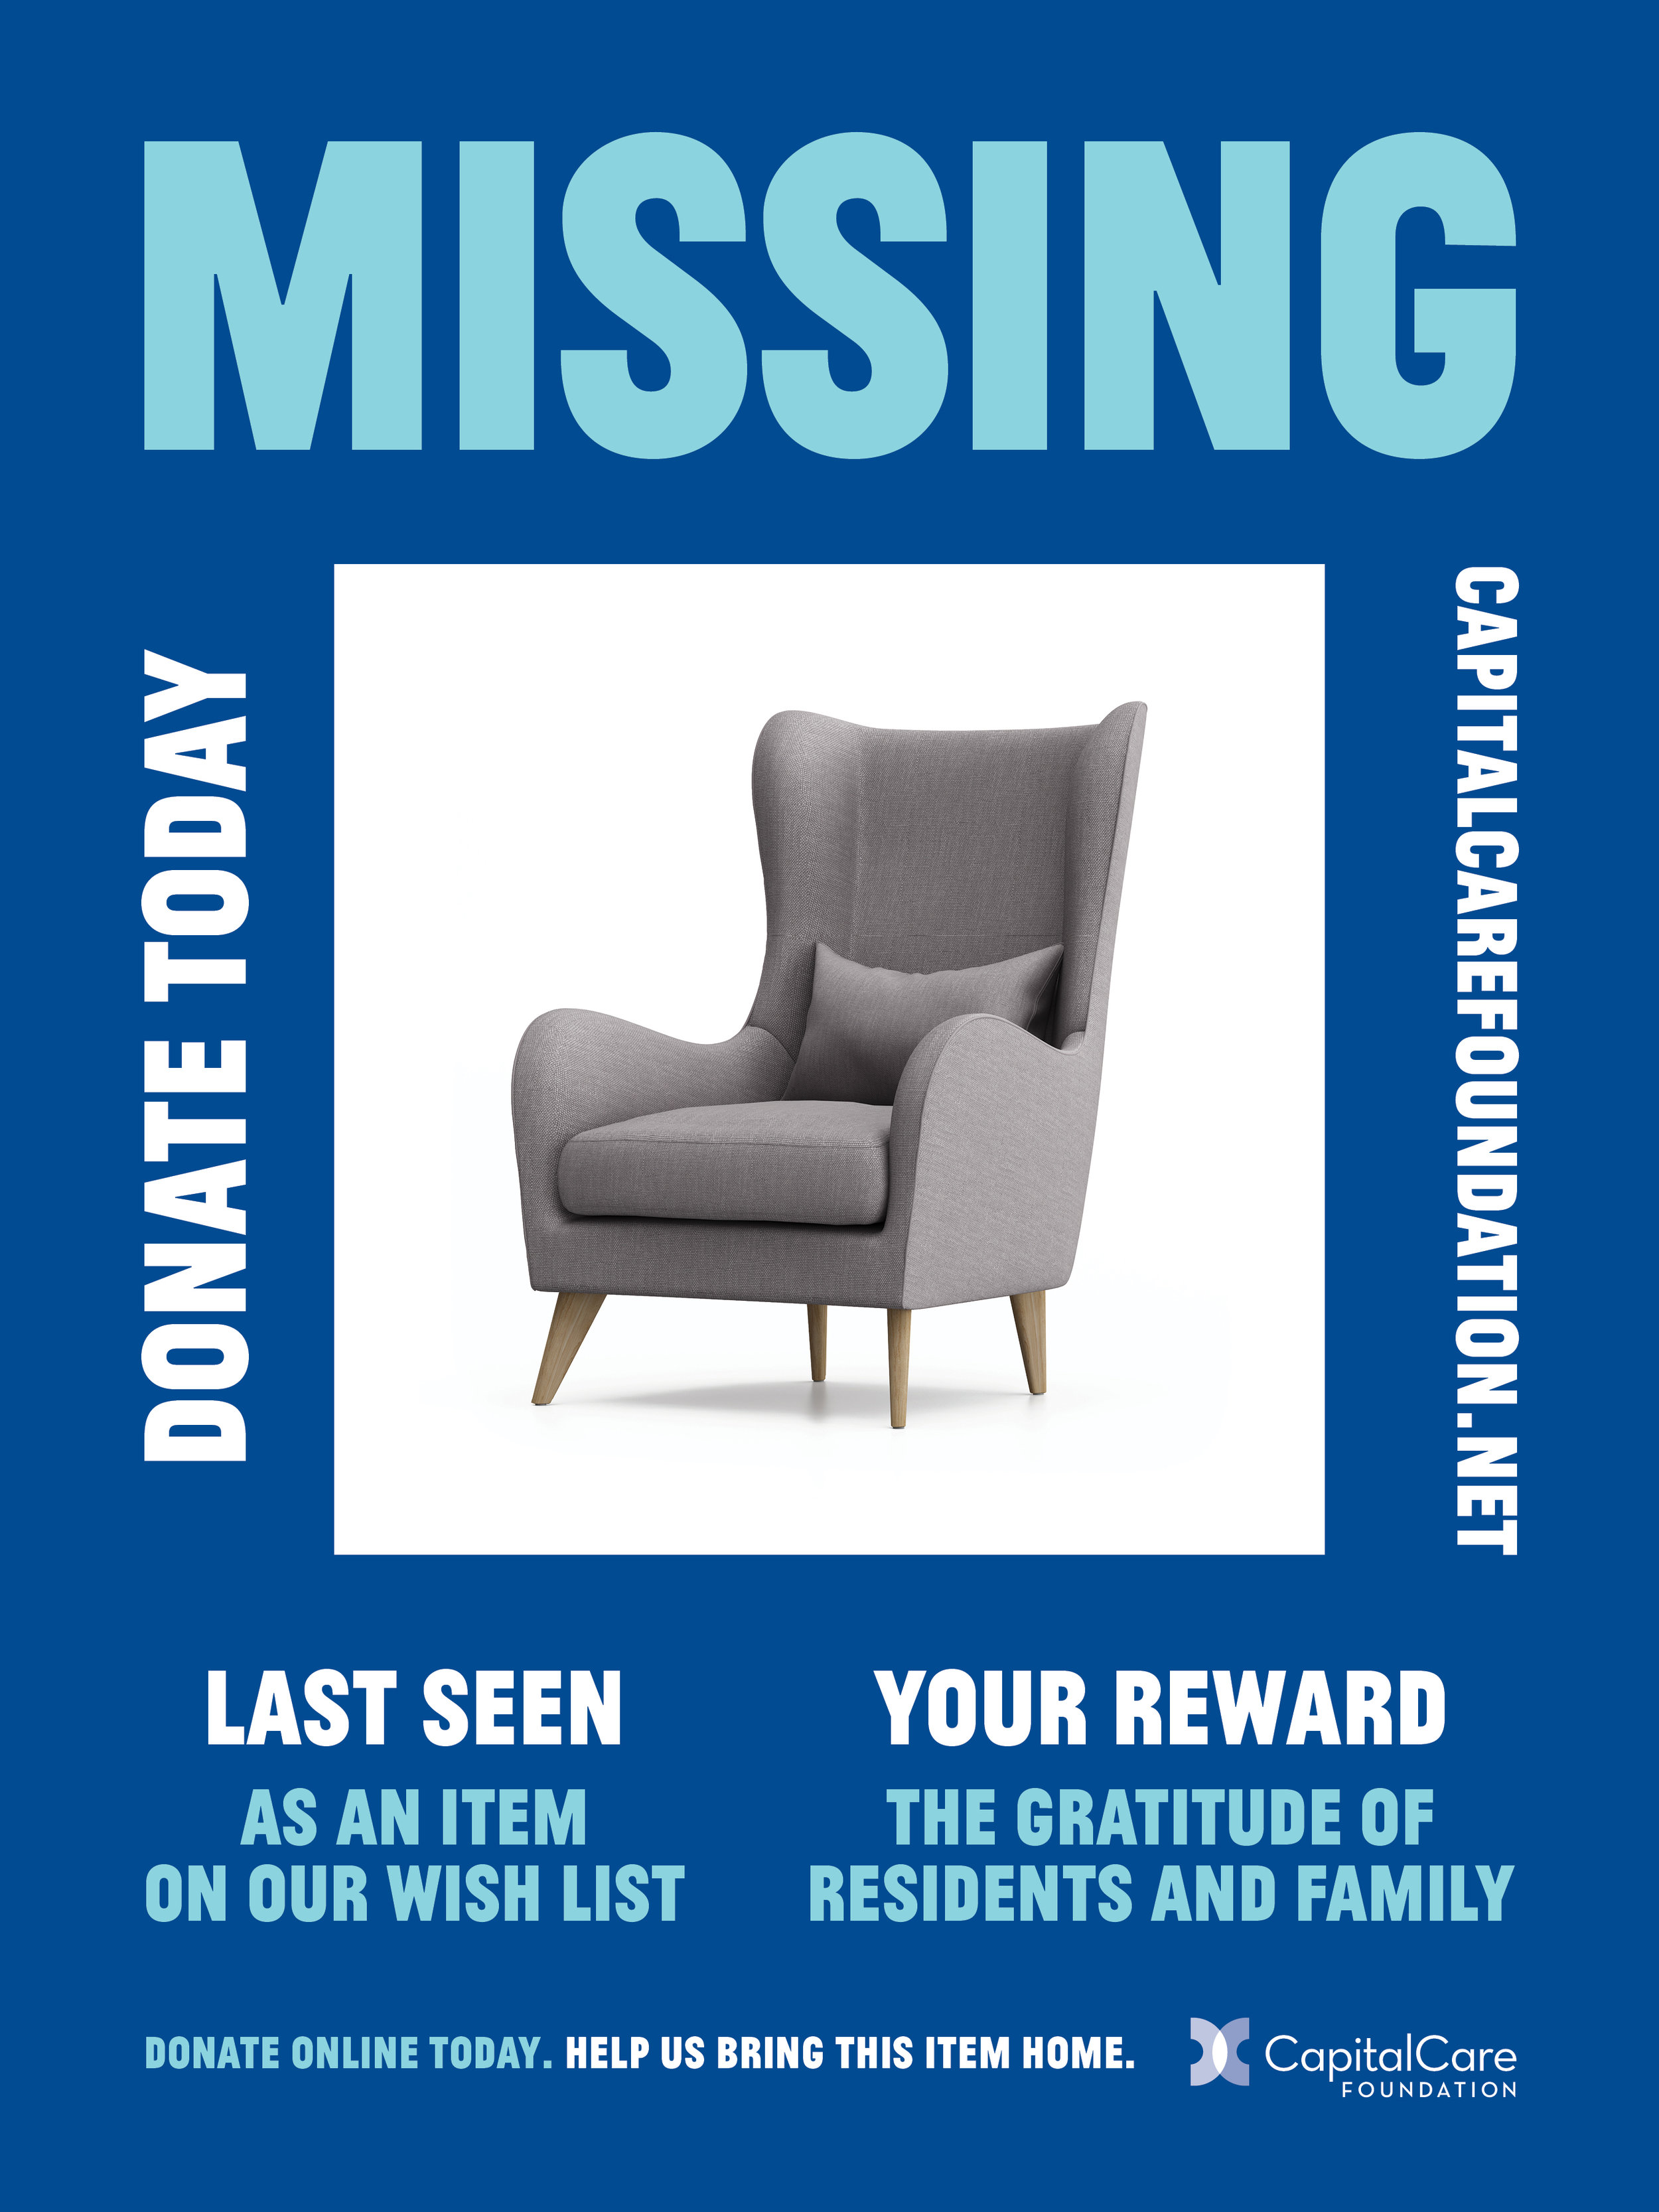 CCF-Fundraising Campaign (New Posters)2.jpg